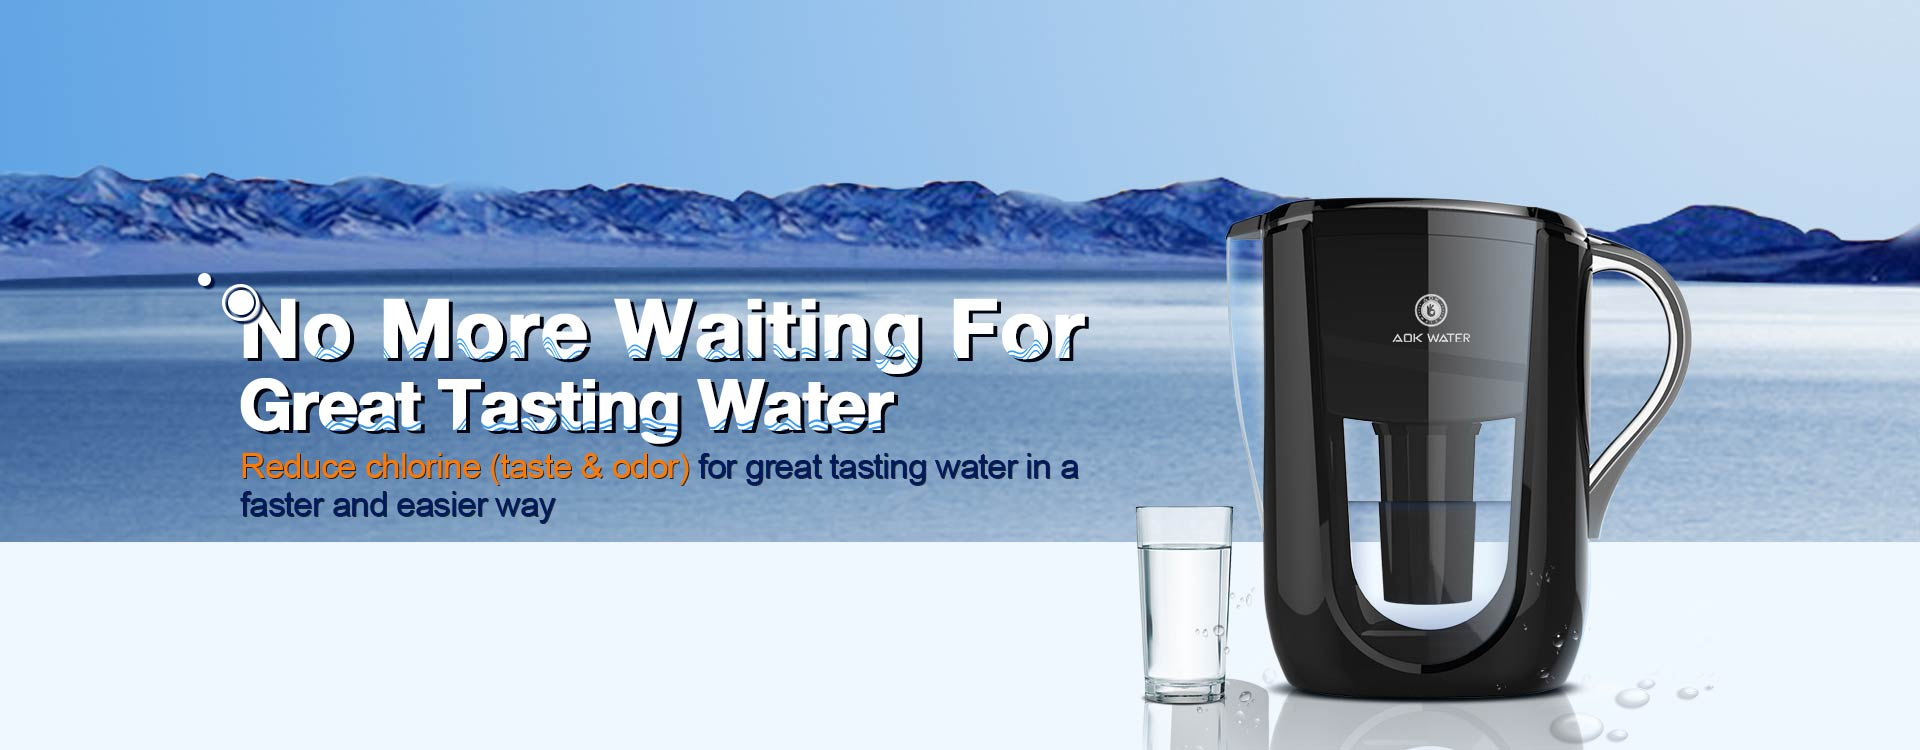 alkaline water filters manufacturer